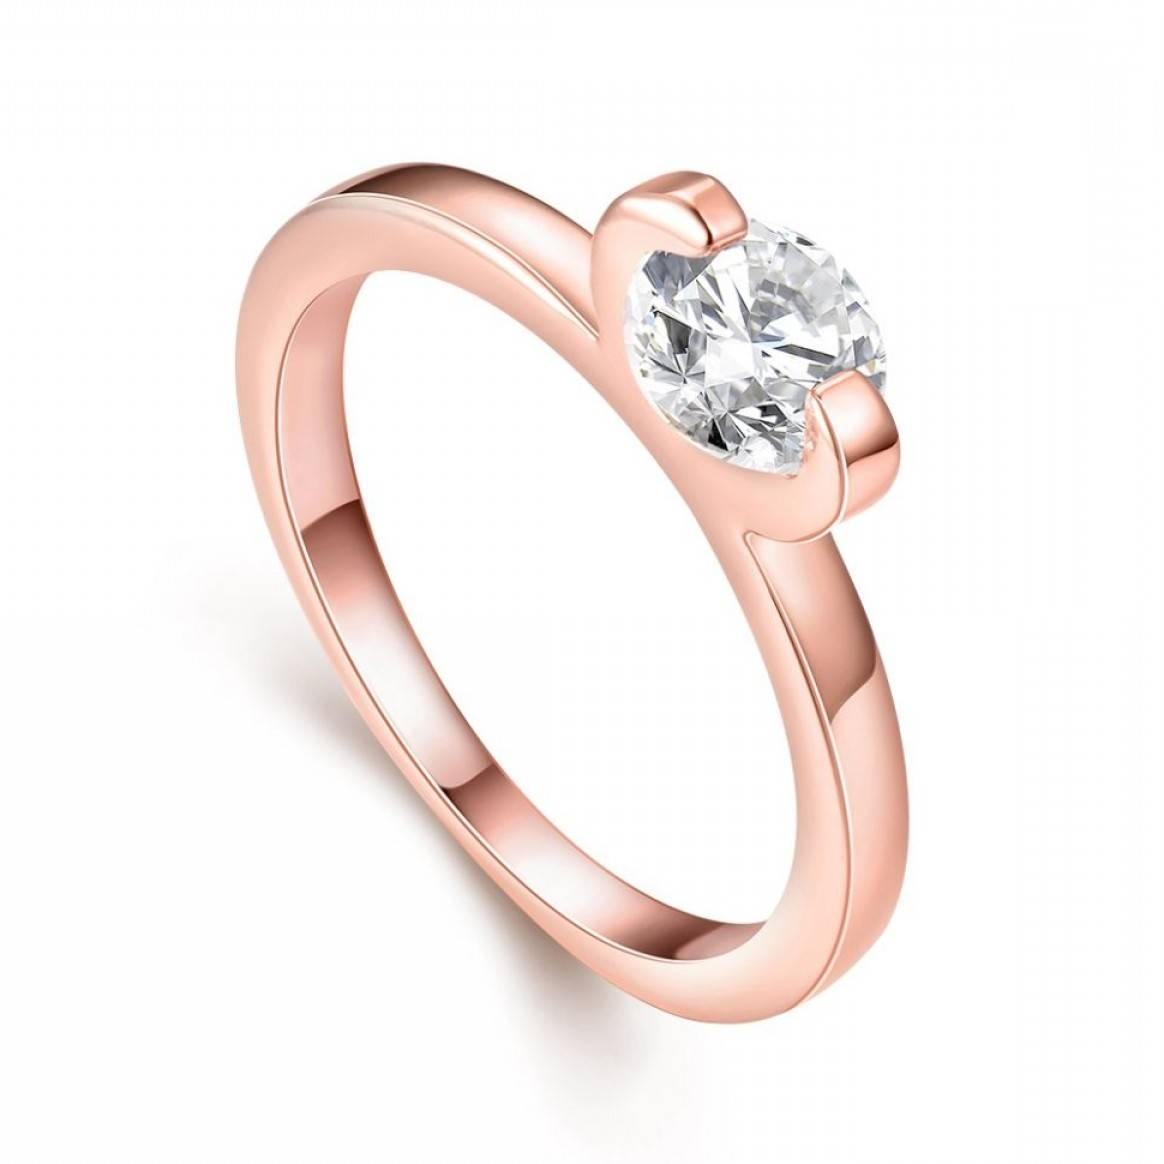 Unique Pretty Anniversary Rings For Women | Ksvhs Jewellery Regarding 2018 His And Her Anniversary Rings (View 17 of 25)